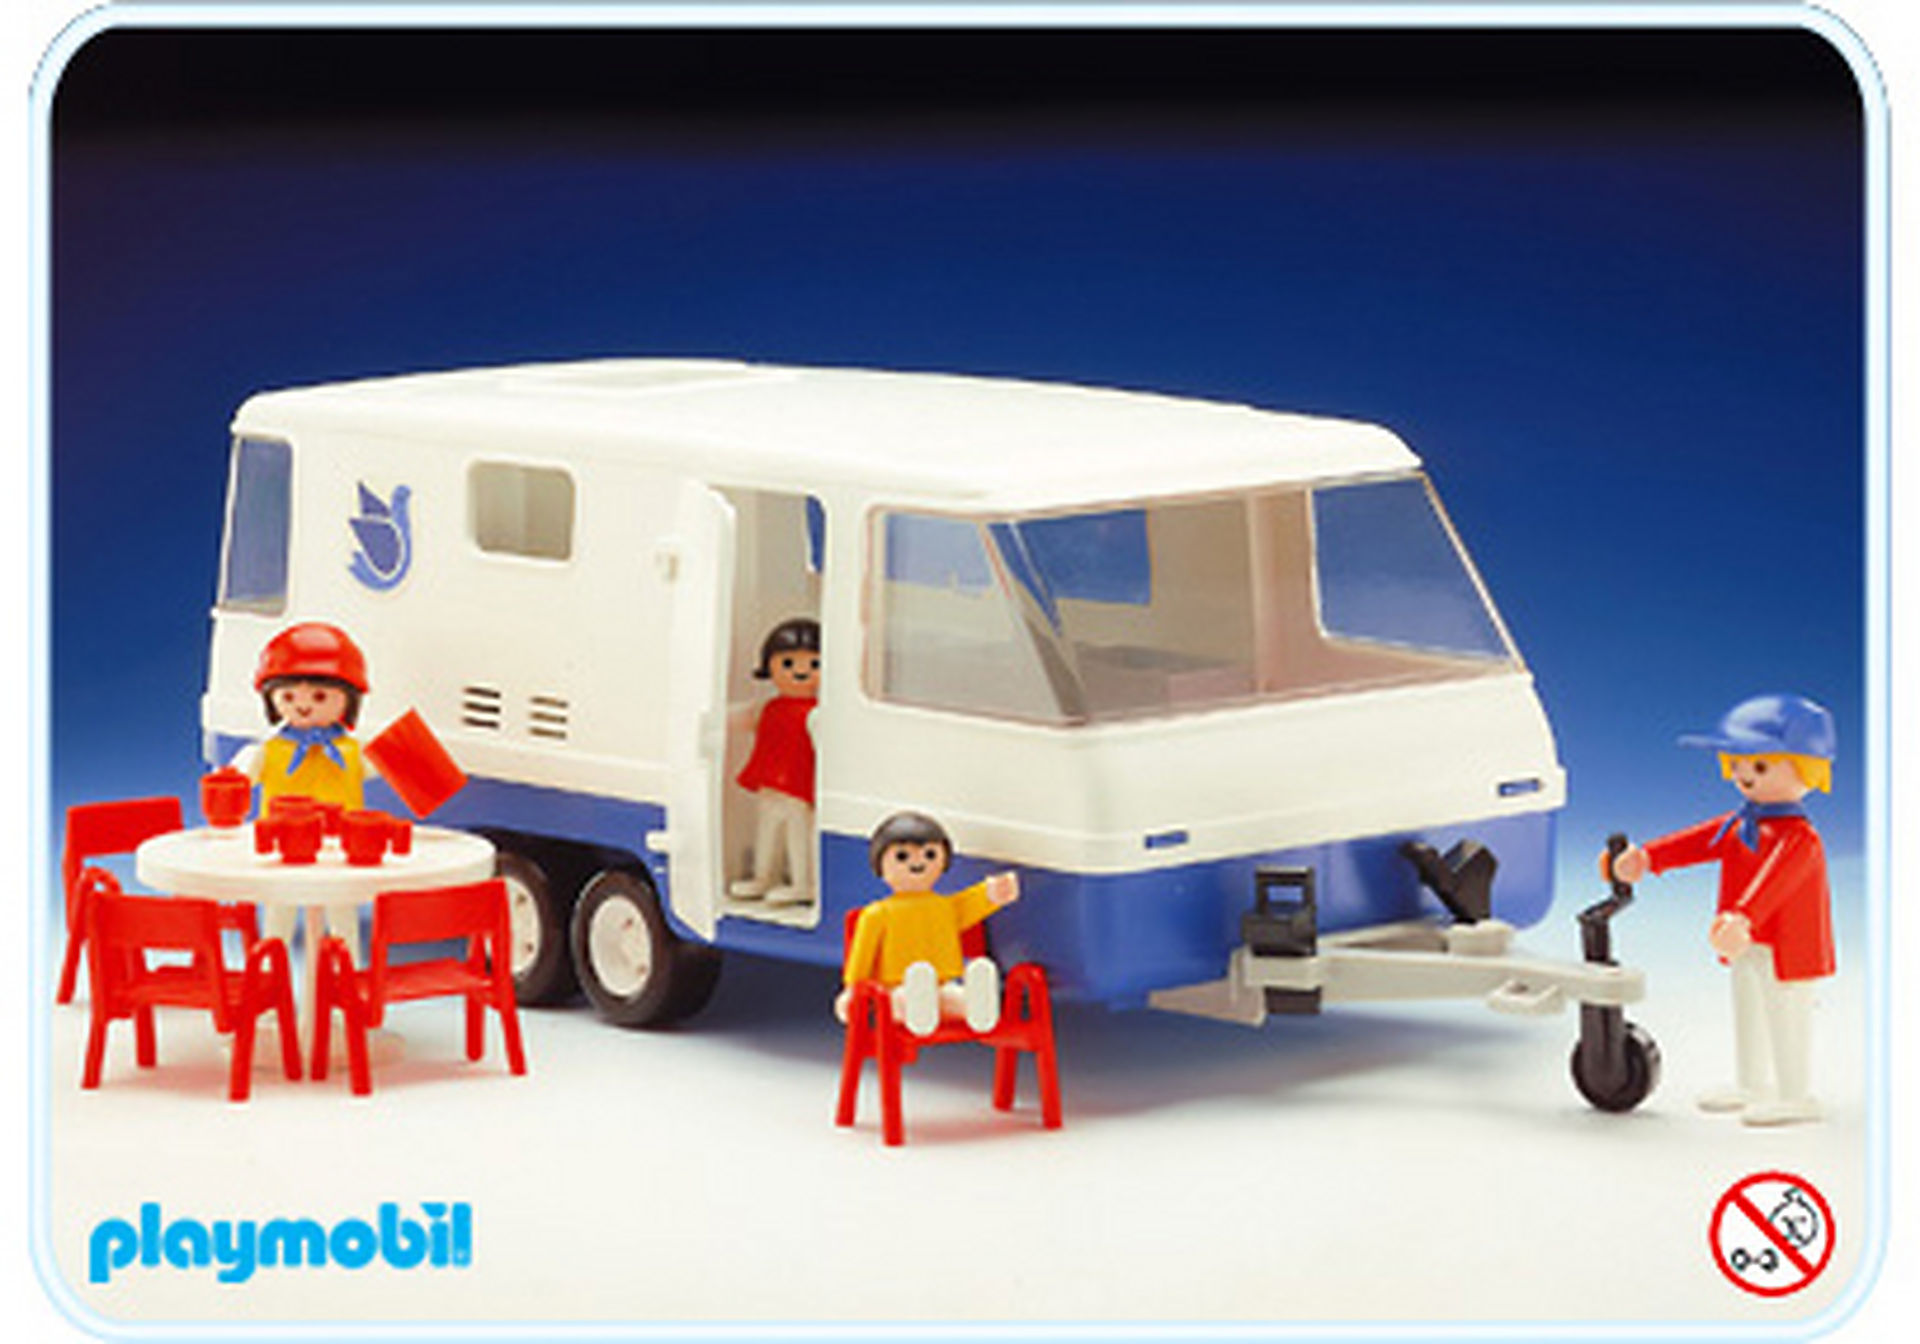 http://media.playmobil.com/i/playmobil/3588-A_product_detail/Wohnwagen